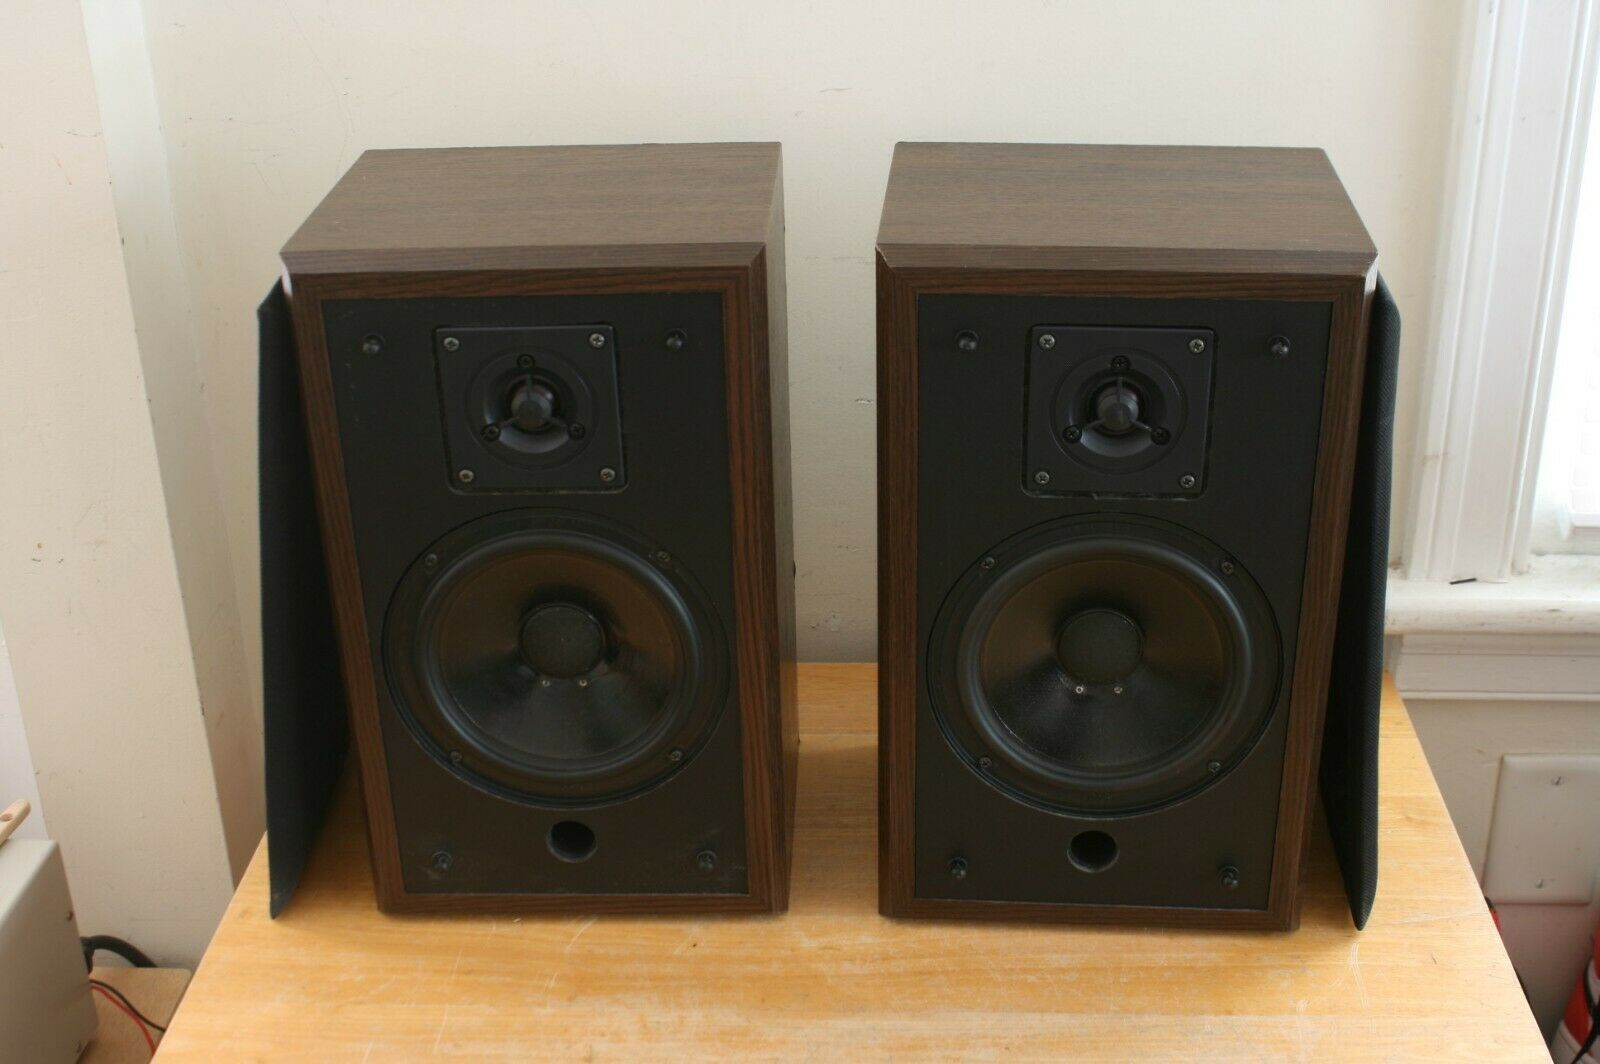 Vintage Polk Audio Monitor 4 Bookshelf Speakers Made in USA